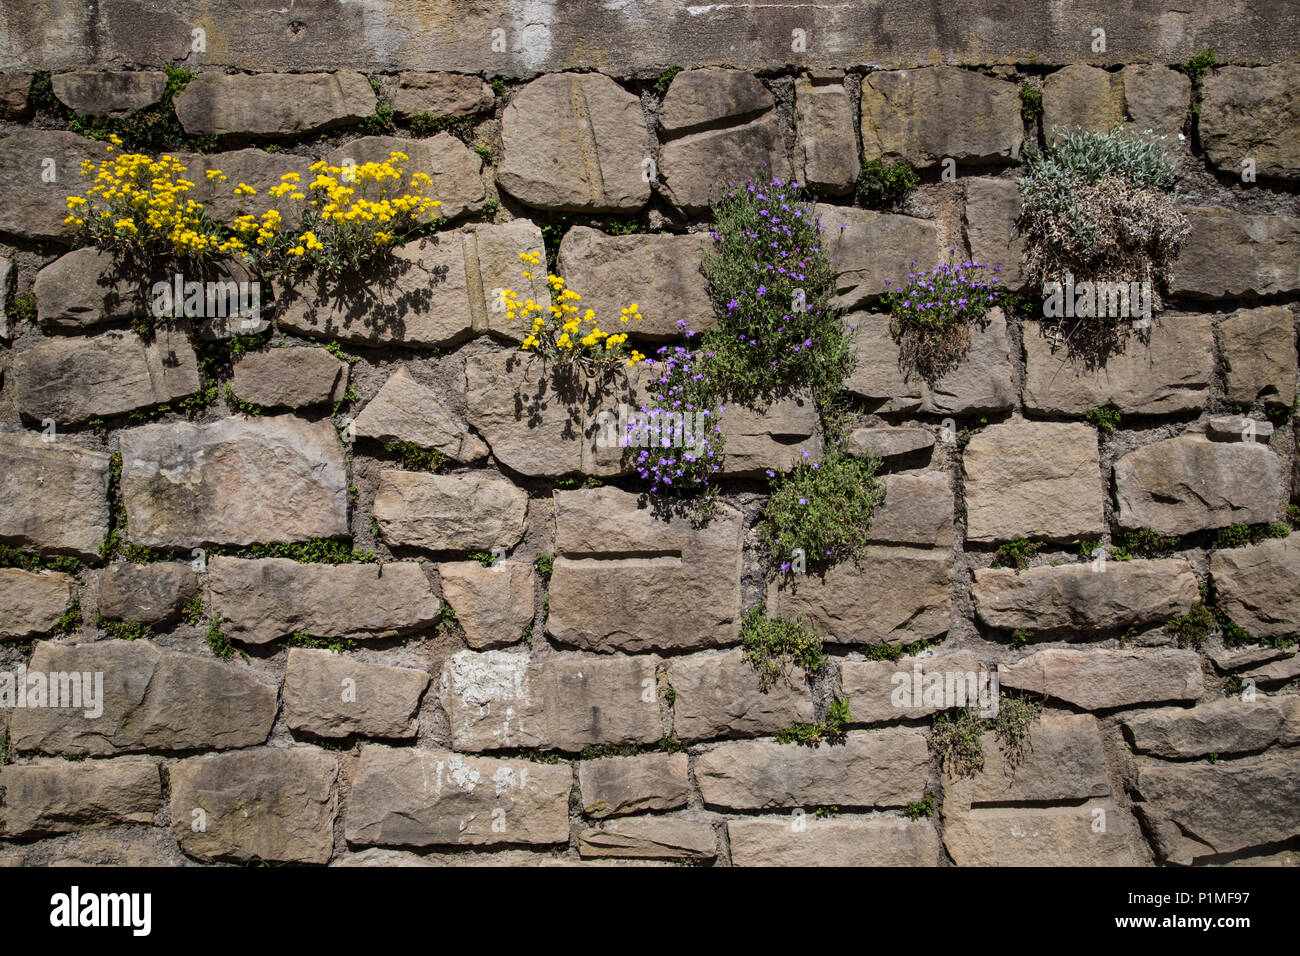 nature finding its way with flourishing thriving plants growing in old dry stone wall - Stock Image